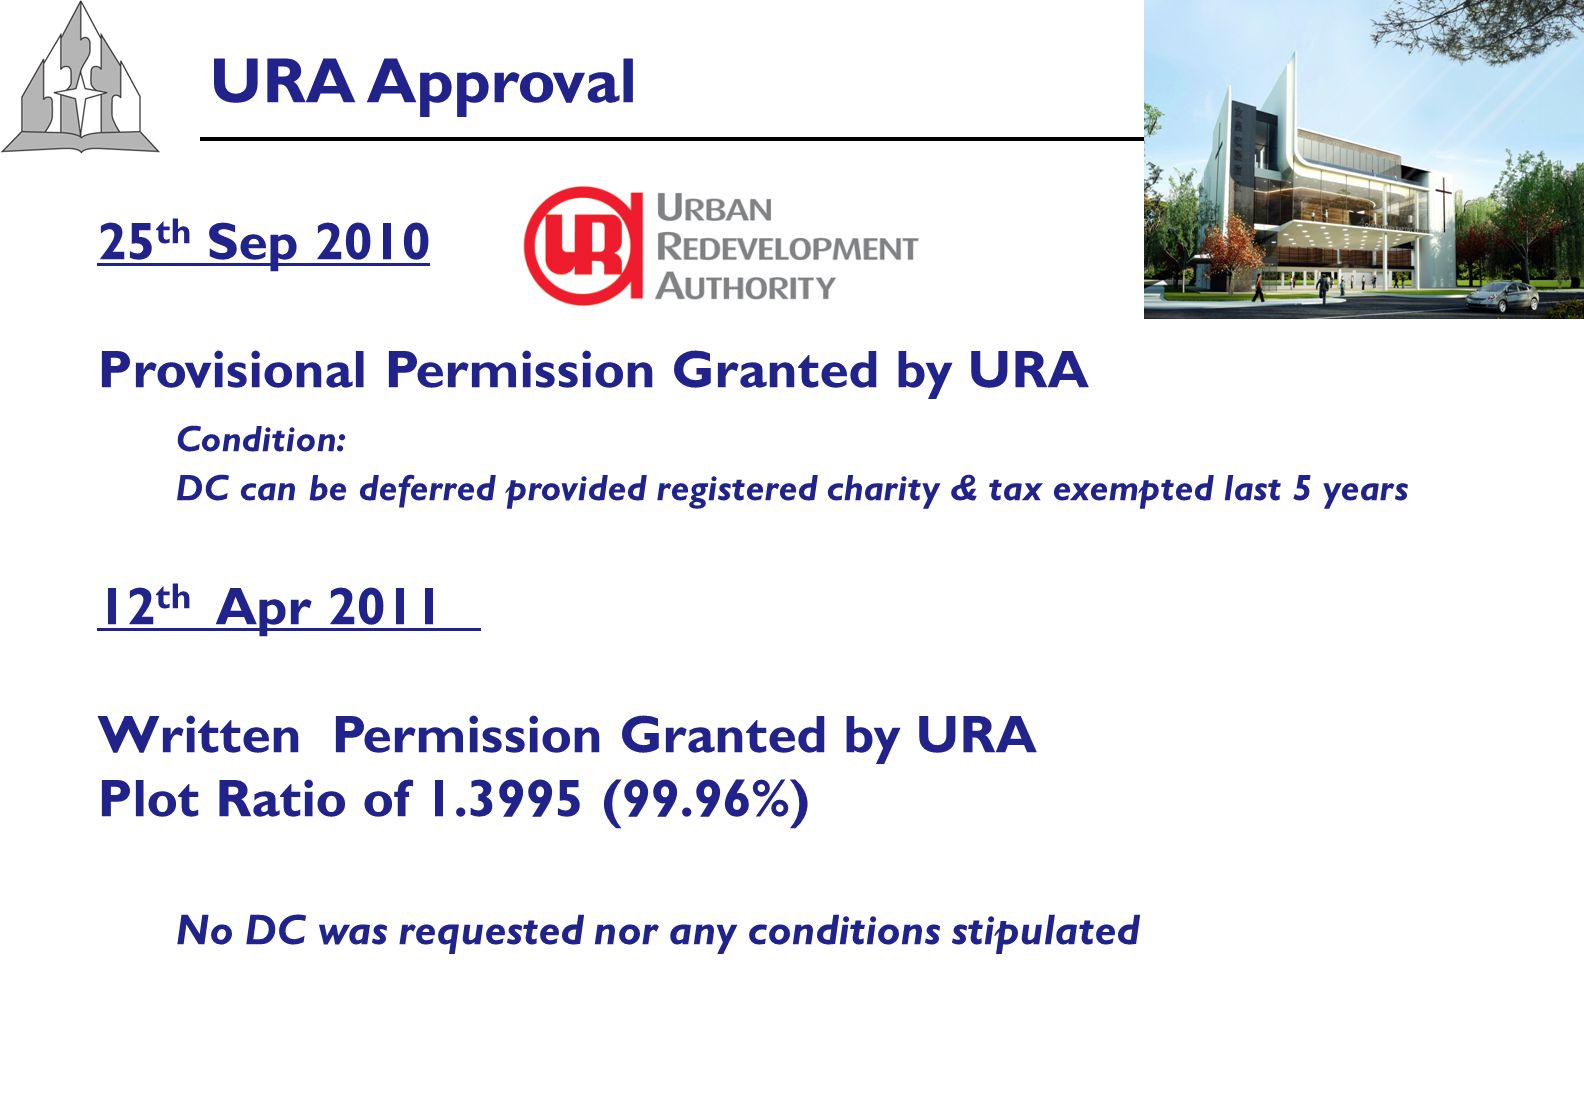 URA Approval 25 th Sep 2010 Provisional Permission Granted by URA Condition: DC can be deferred provided registered charity & tax exempted last 5 years 12 th Apr 2011 Written Permission Granted by URA Plot Ratio of 1.3995 (99.96%) No DC was requested nor any conditions stipulated